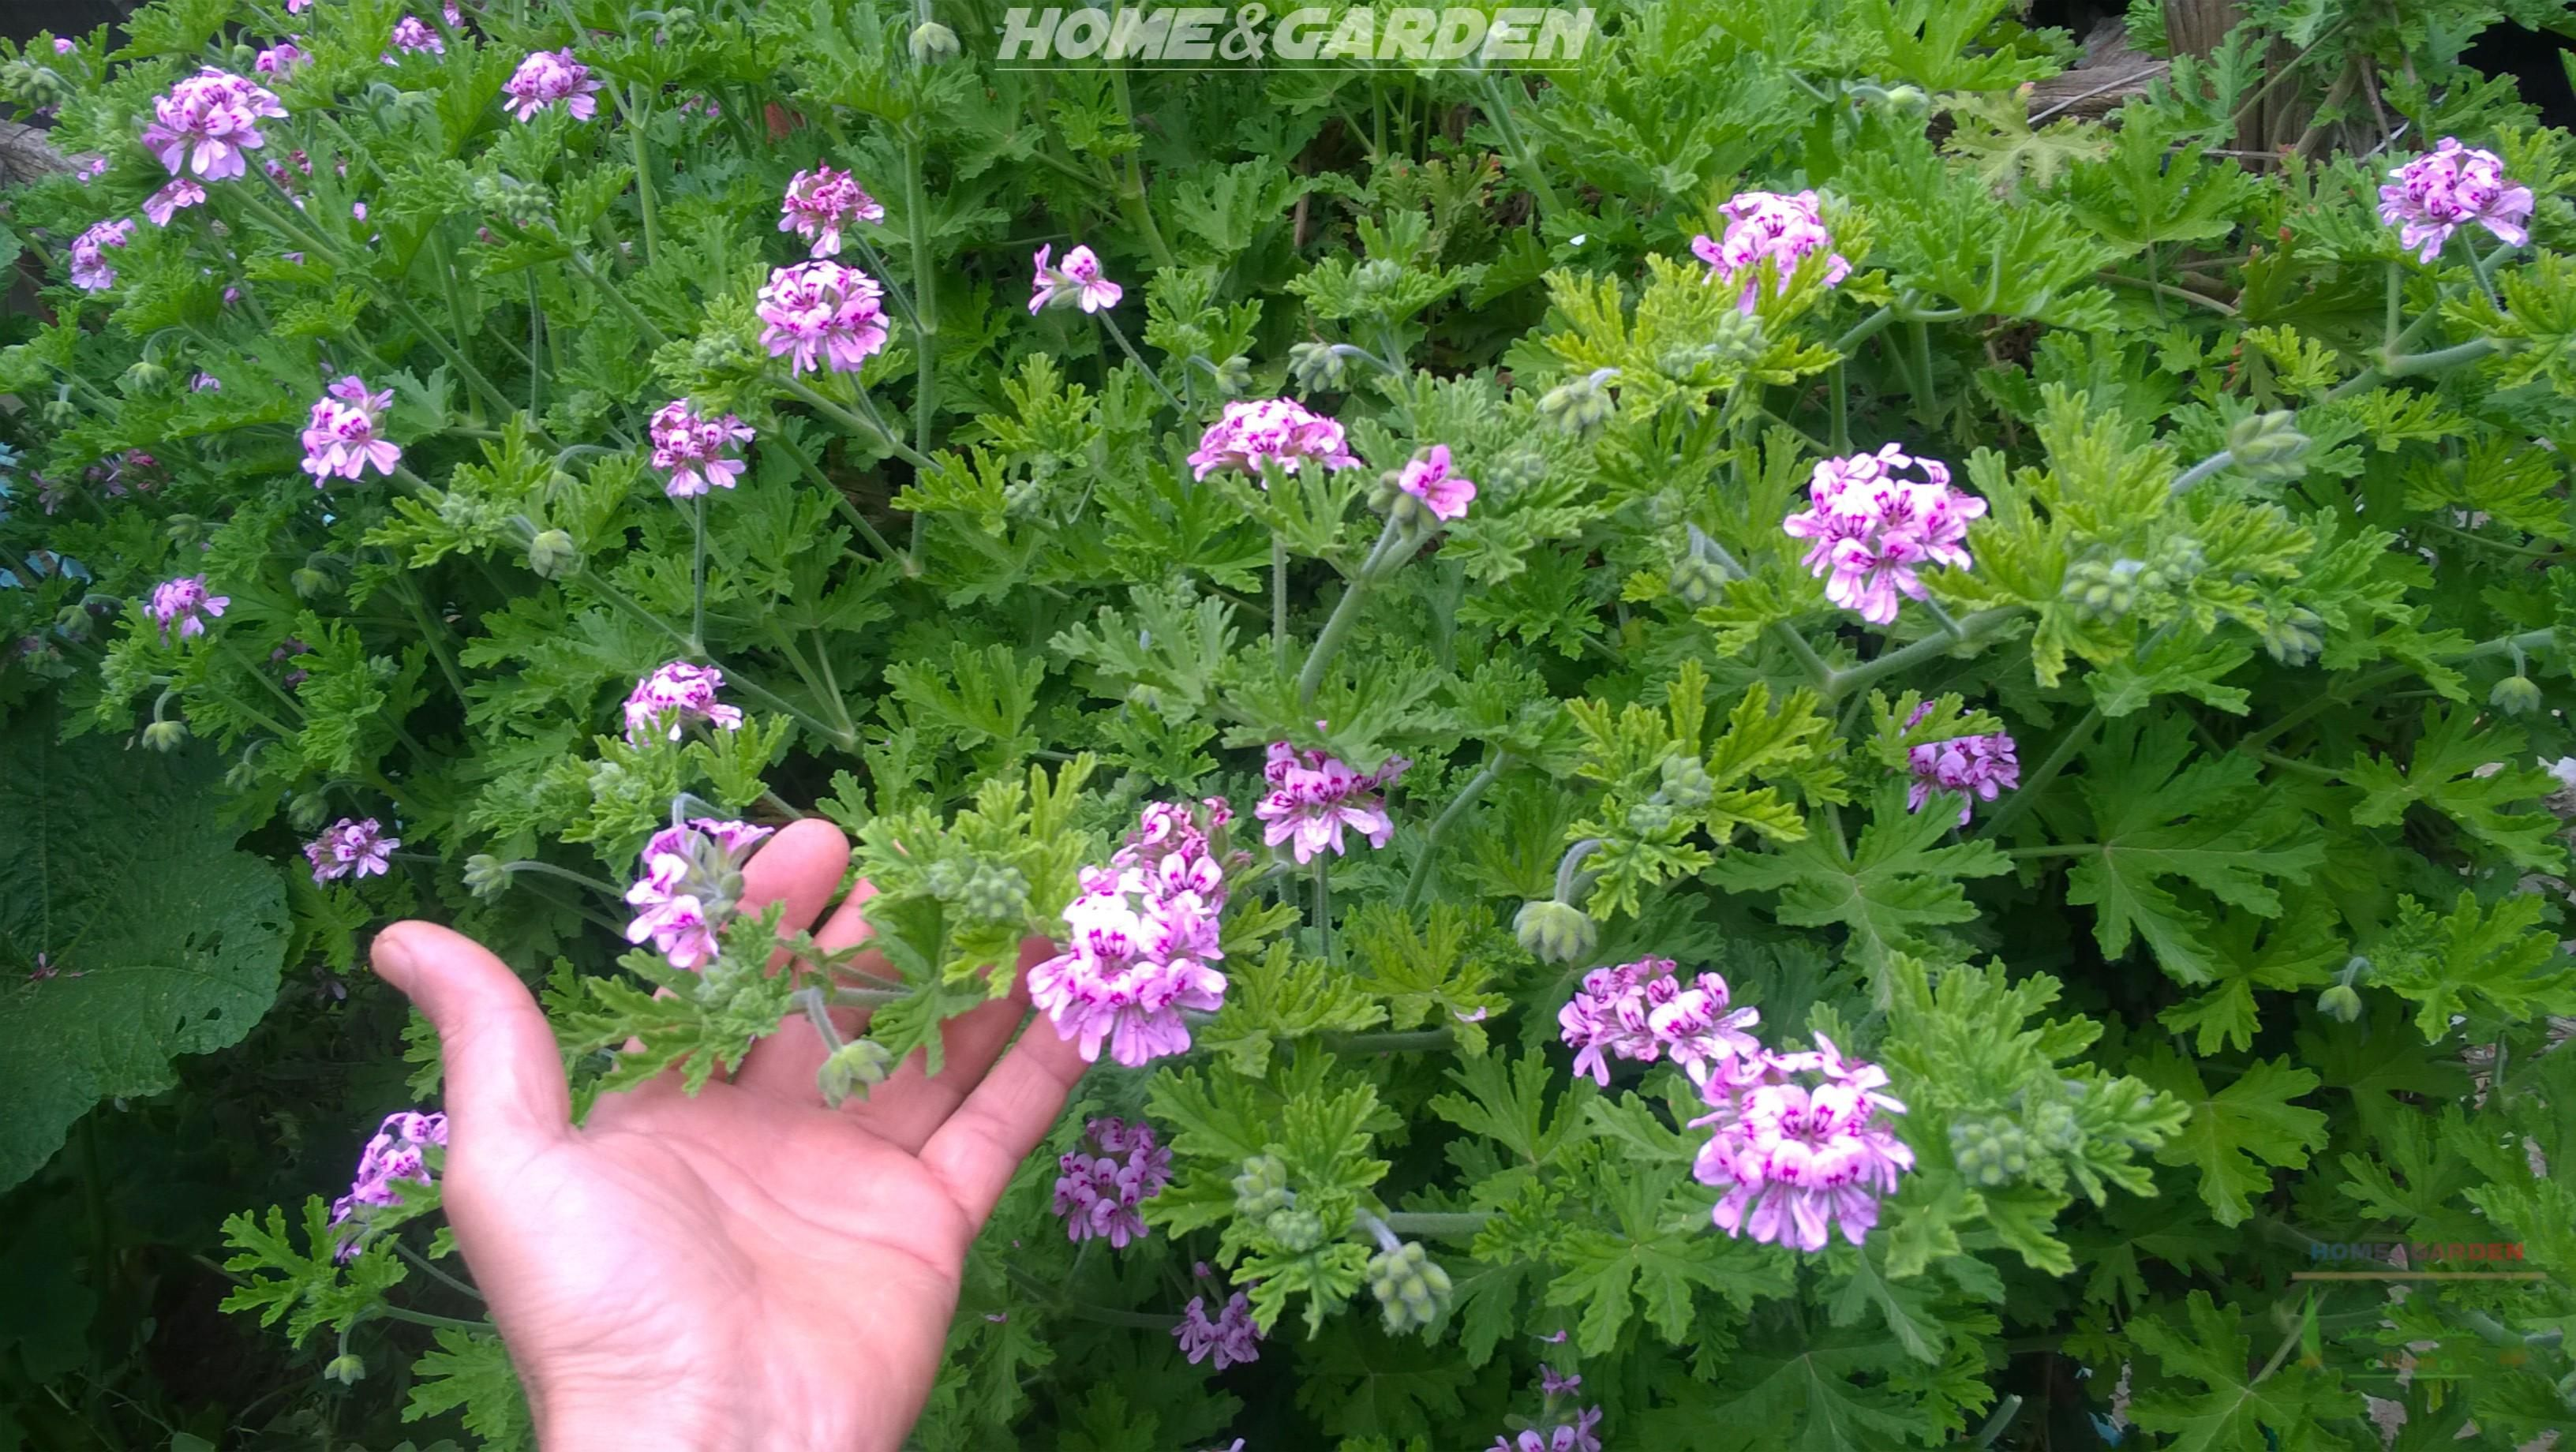 Delightfully Fragrant And Easy To Grow Rose Scented Geranium Is A Fast Growing Plant With Hi Rose Scented Geranium Scented Geranium Rose Geranium Essential Oil